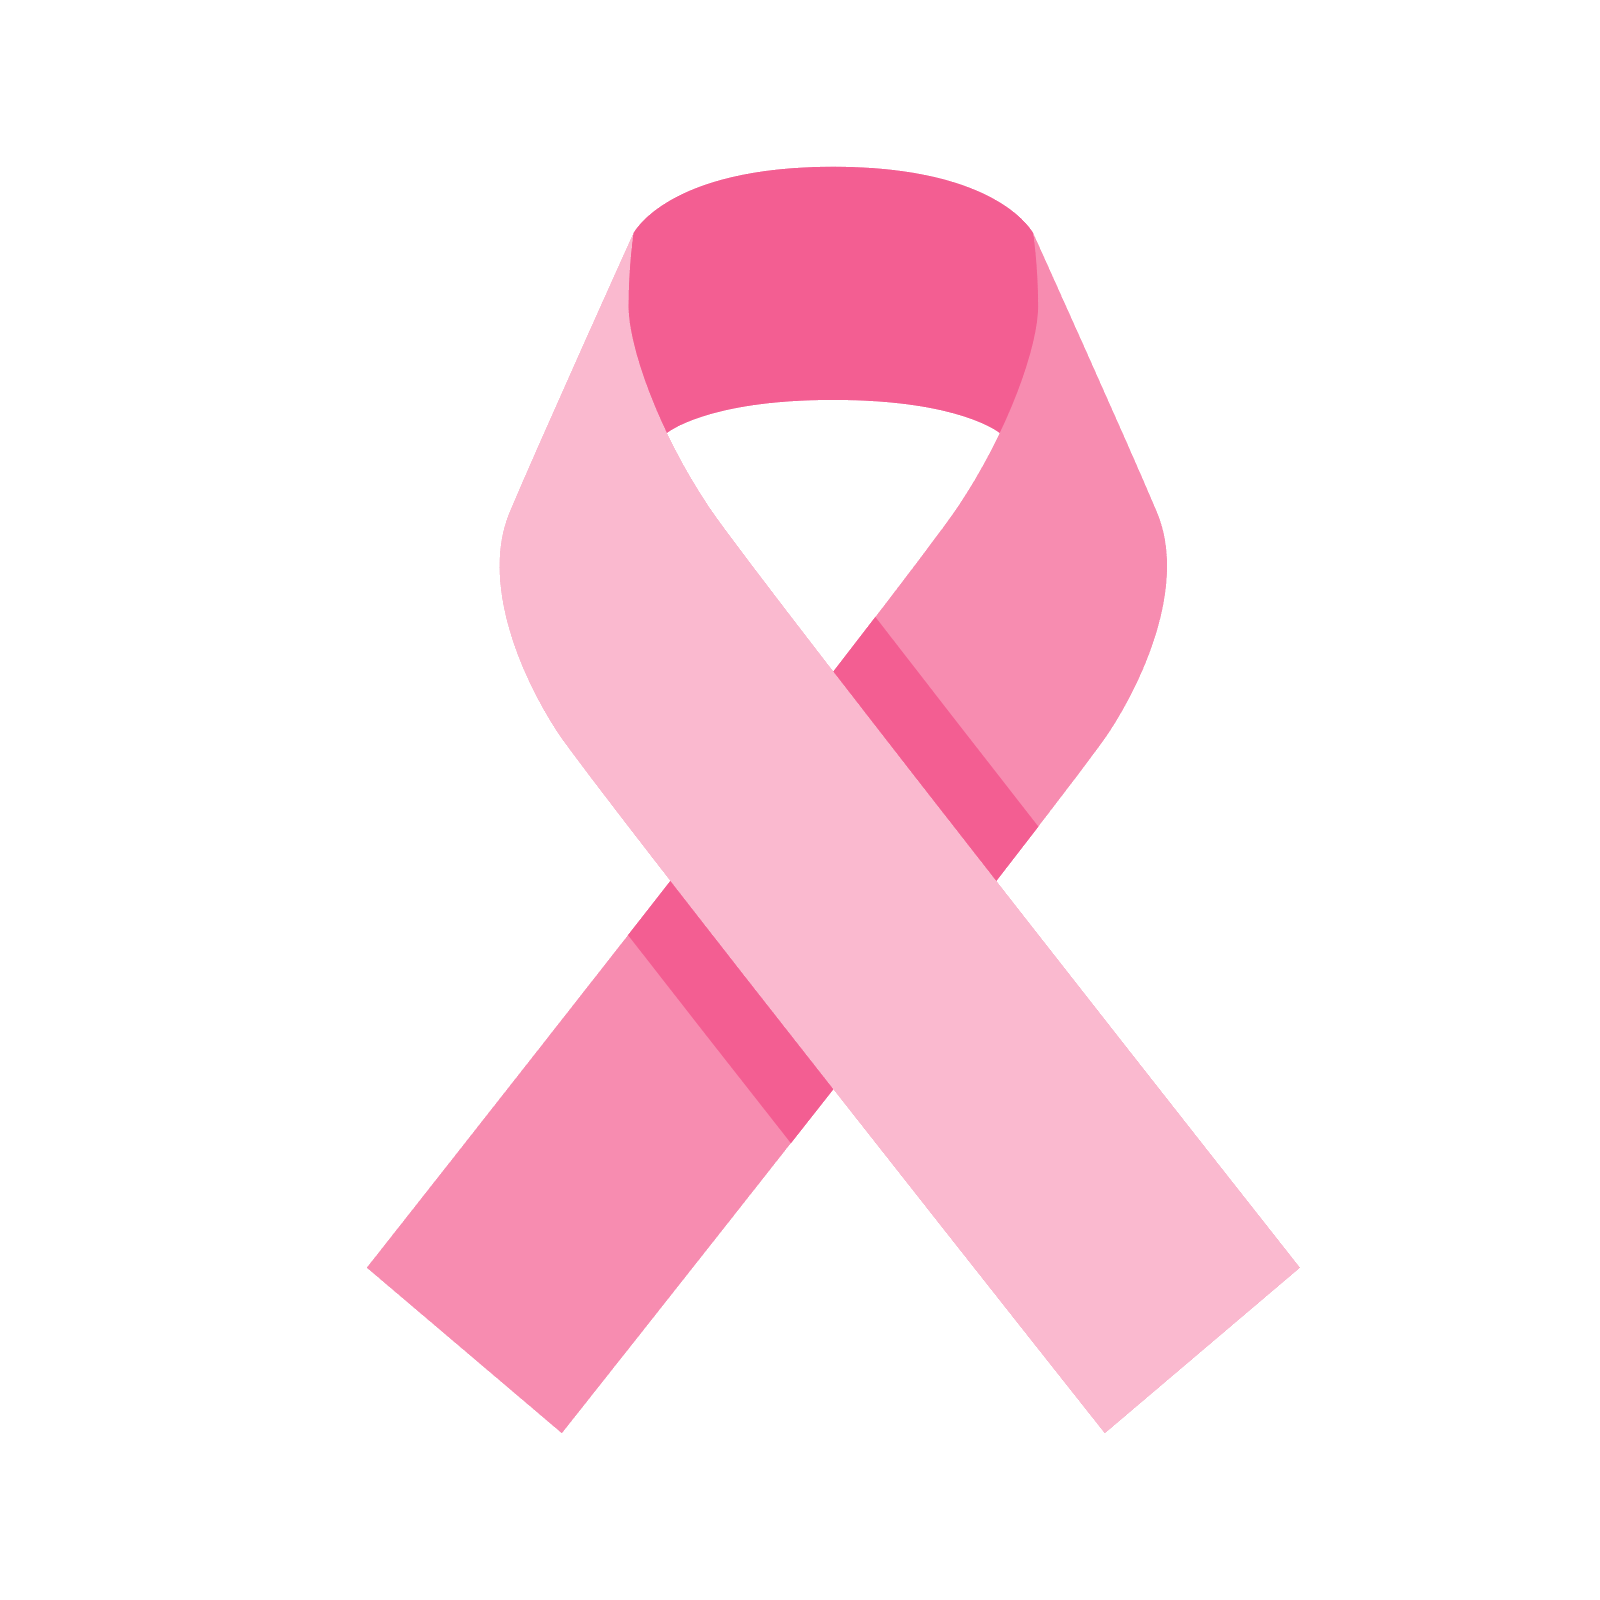 Pink Ribbon Icon - free download, PNG and vector